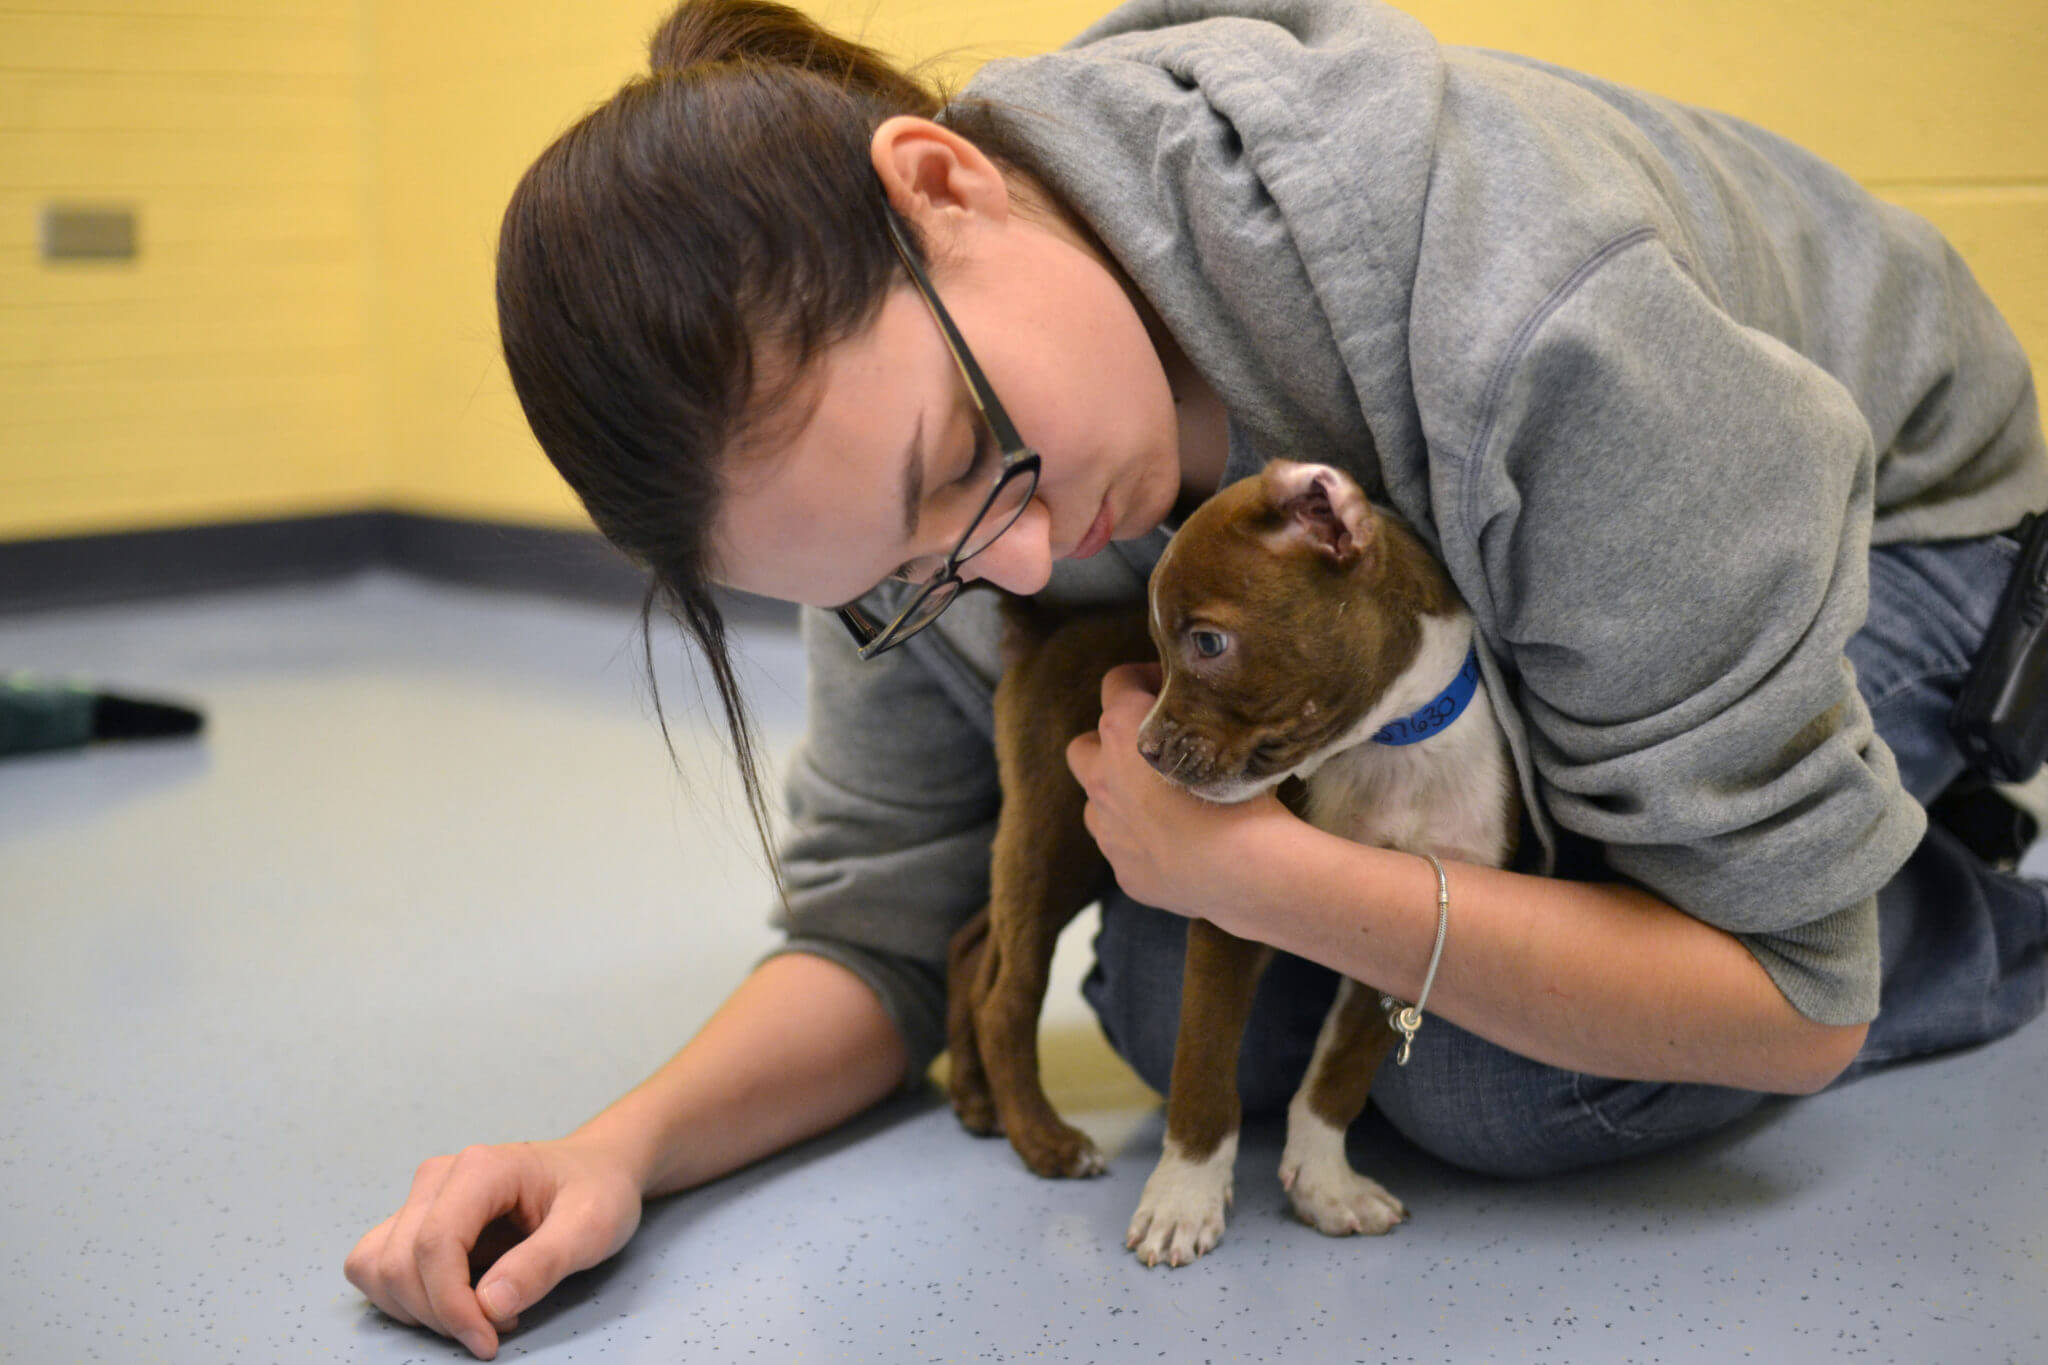 Our hard working staff cares greatly for each animal that comes through our doors.